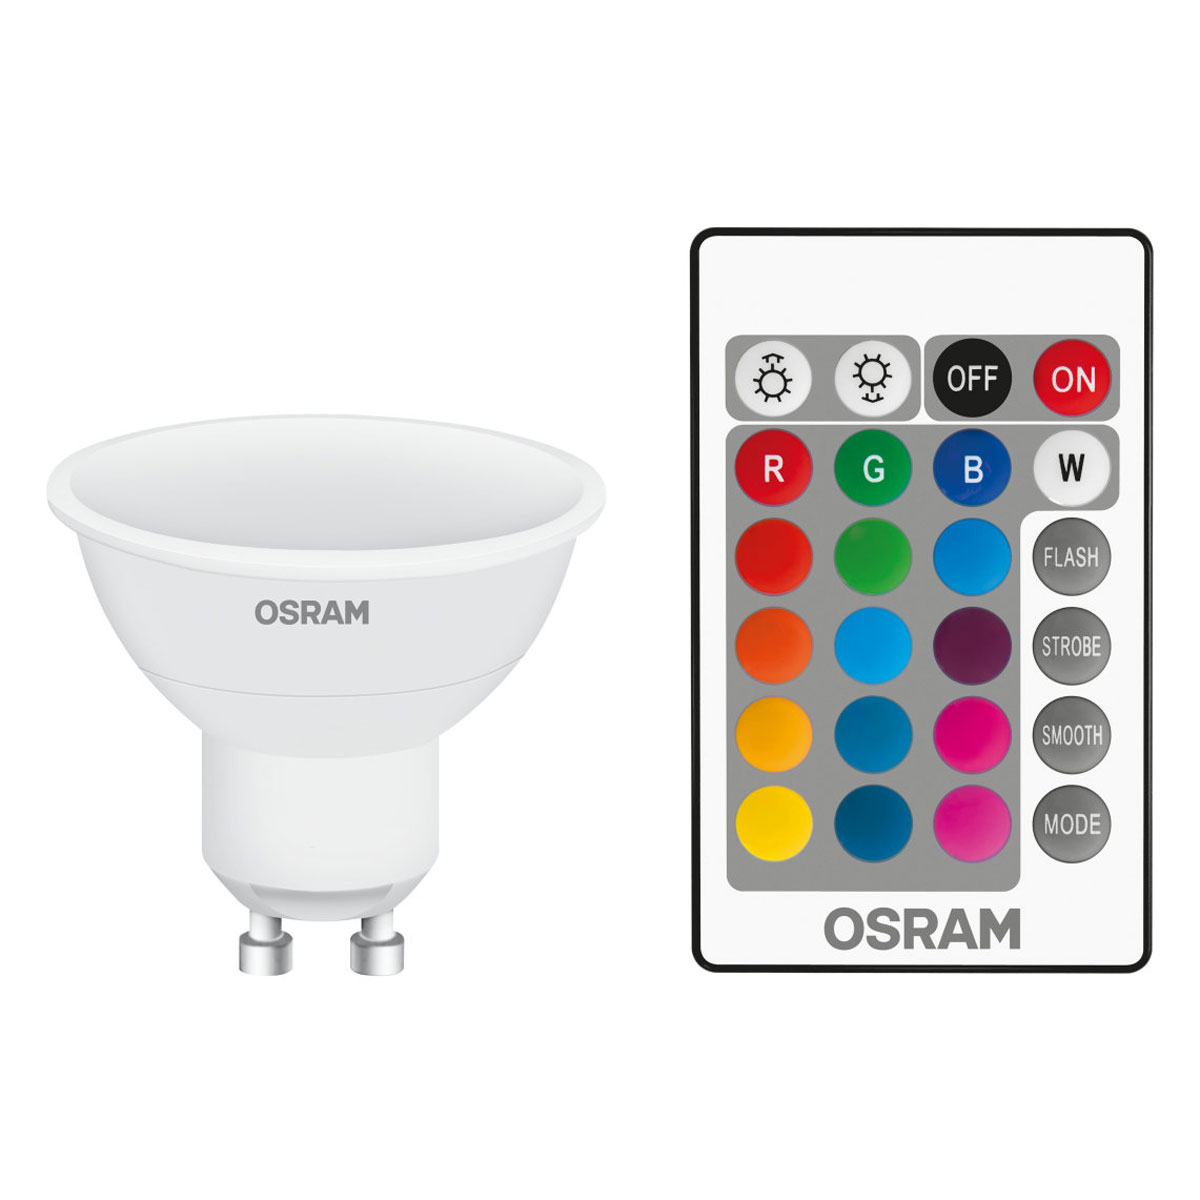 osram ampoule led retrofit rgbw t l commande gu10 4 5w 25w a ampoule led osram sur. Black Bedroom Furniture Sets. Home Design Ideas